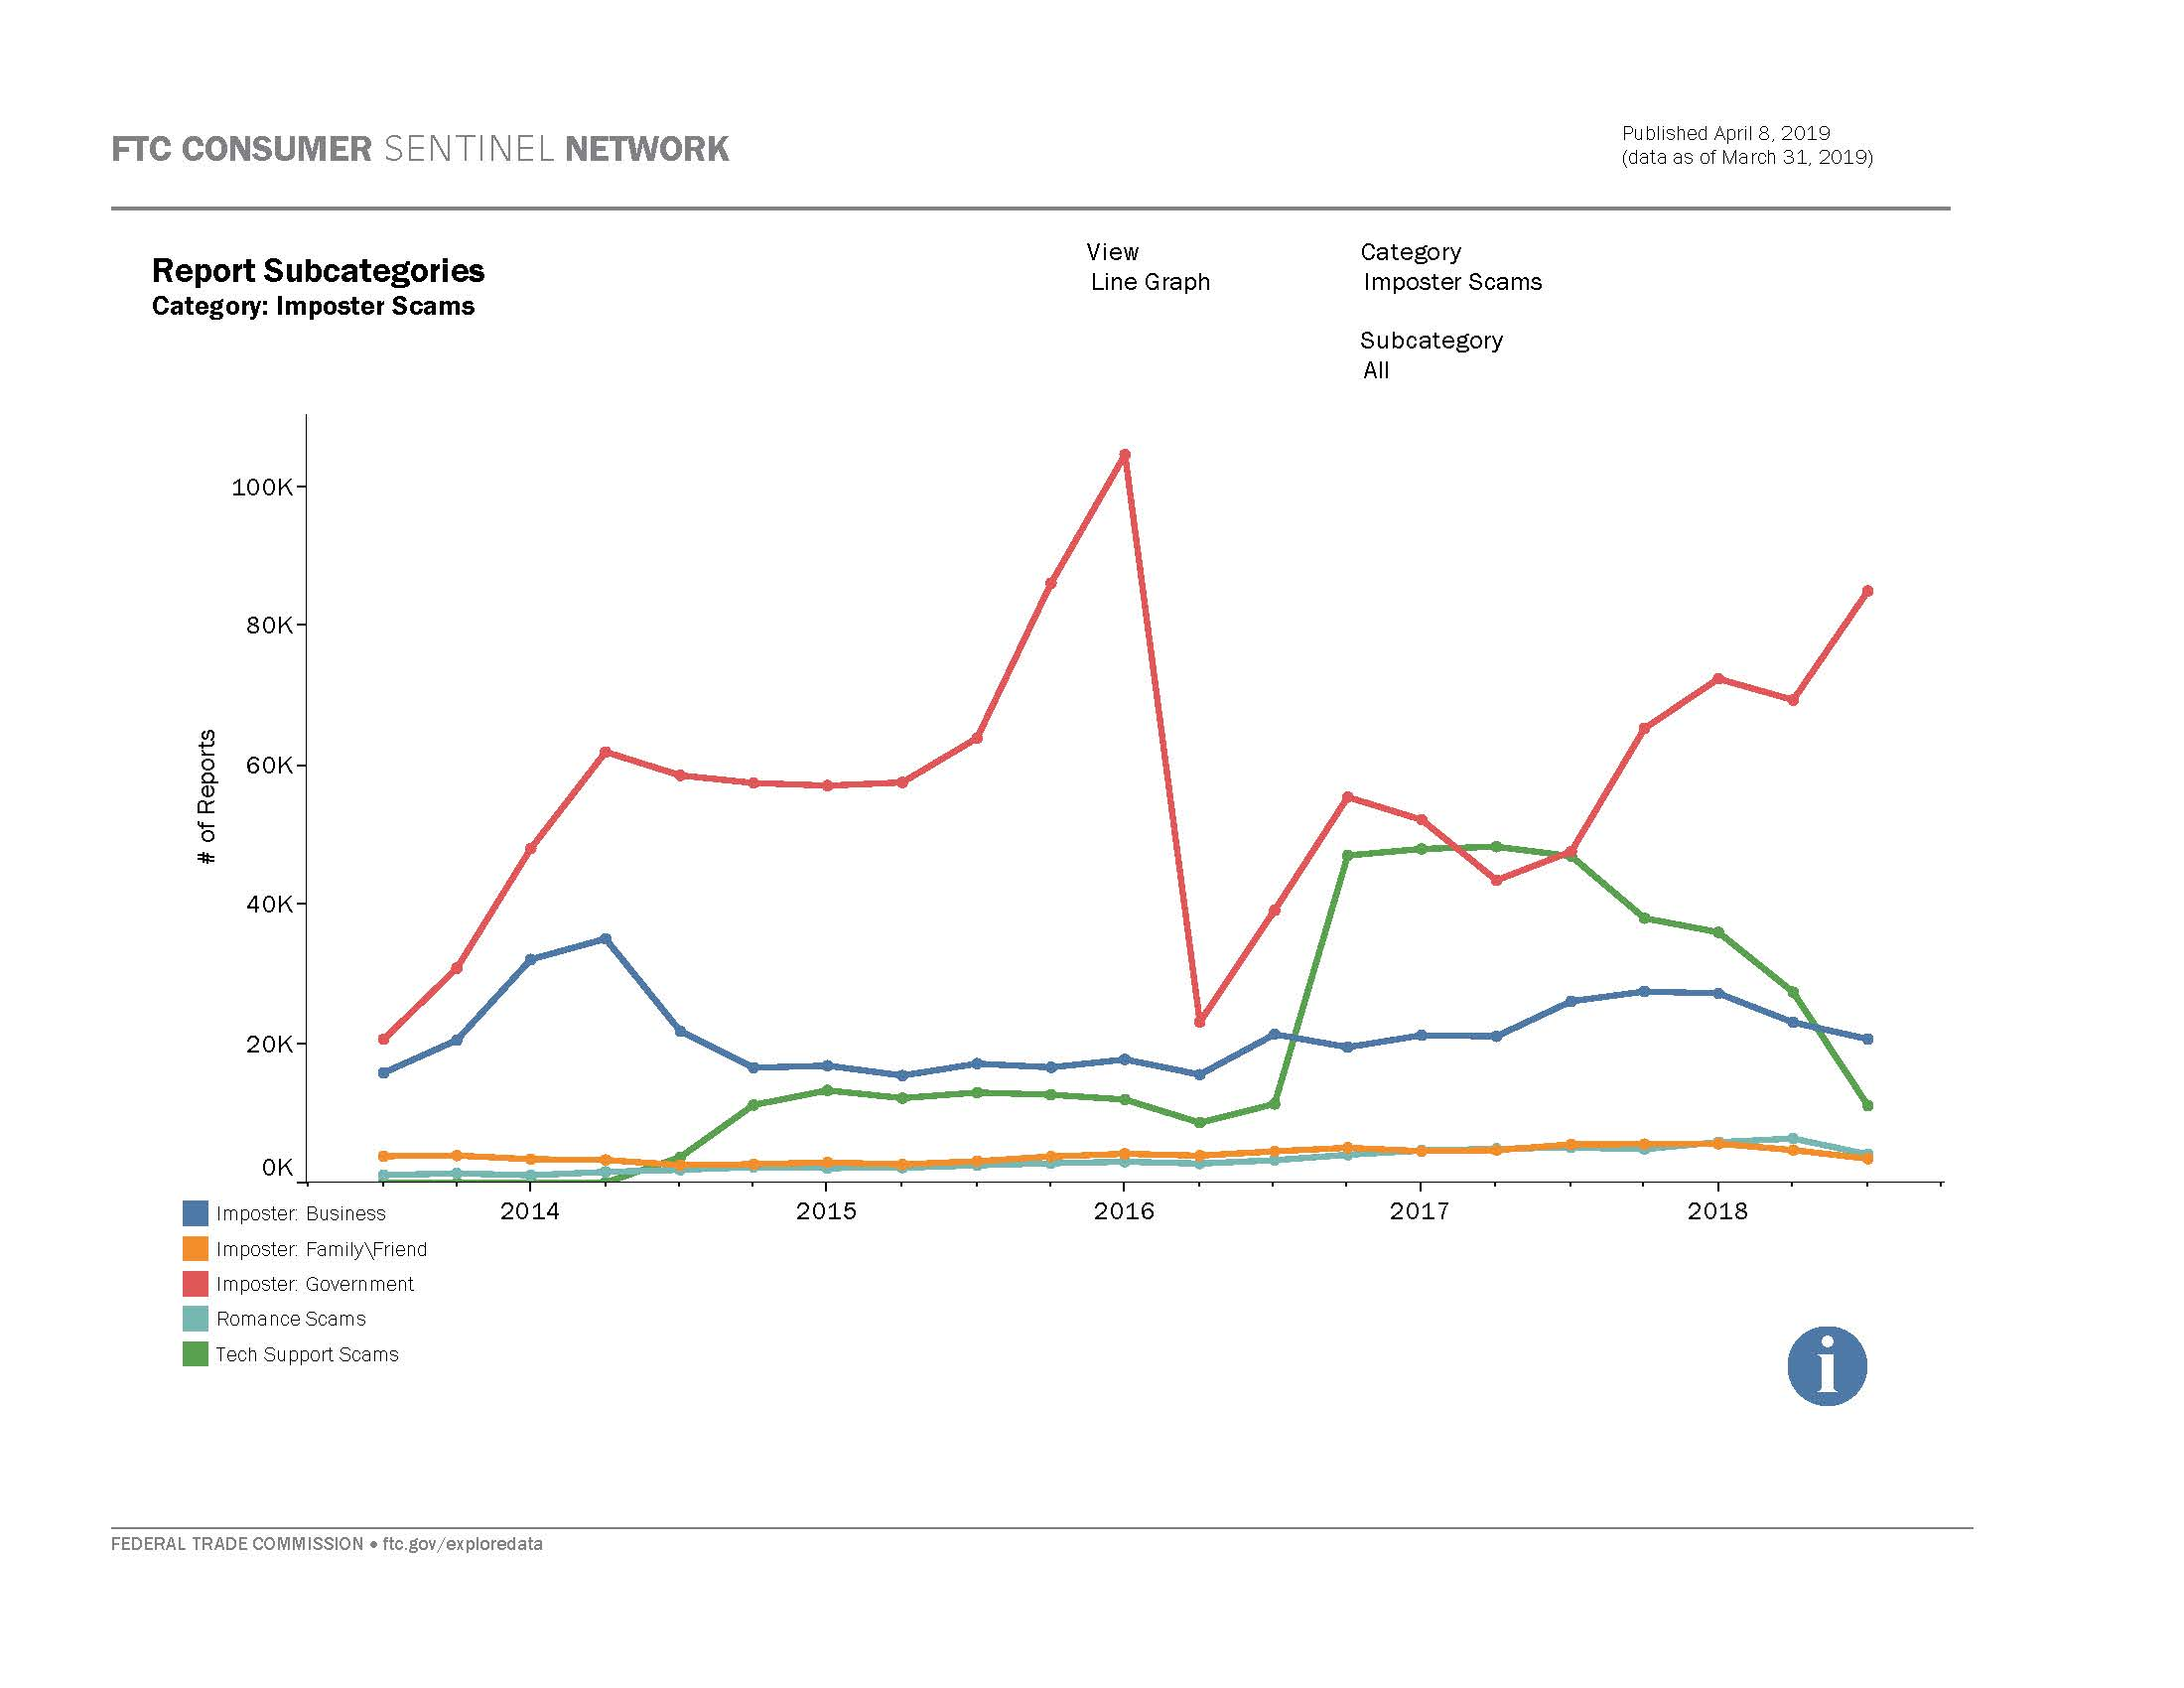 Link to interactive dashboard showing number of fraud reports by fraud subcategory over time.